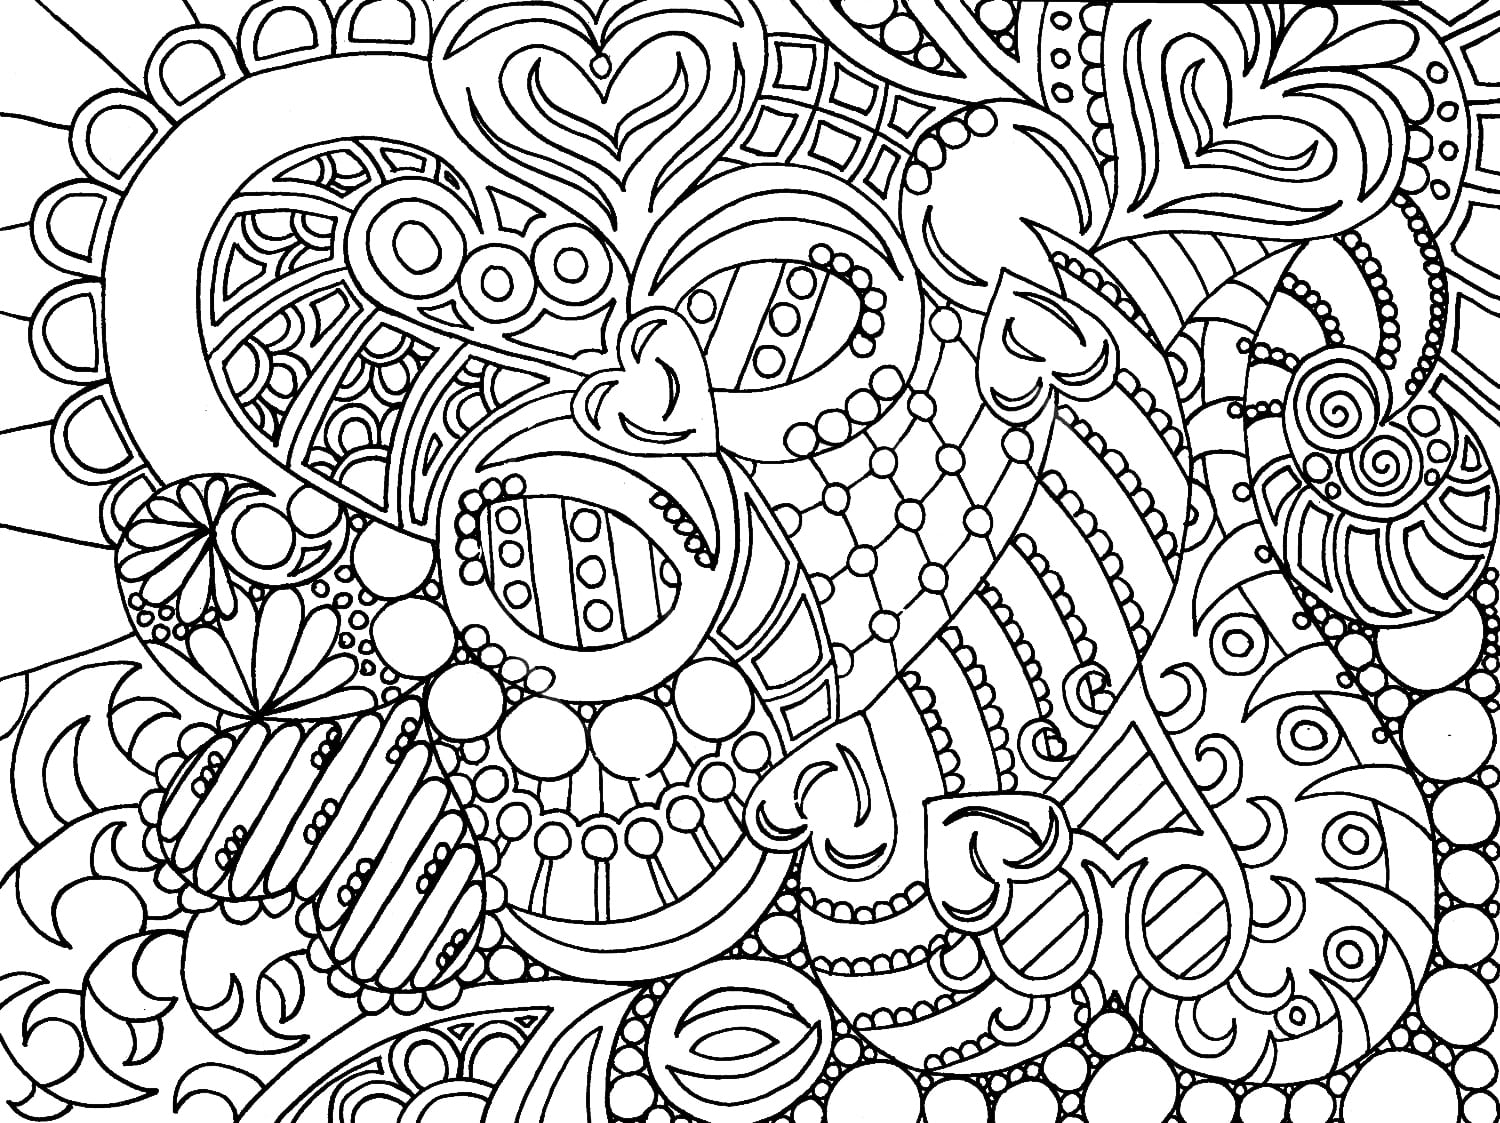 Coloring Pages For Adults To Print Out Page 5 Free Printable Find